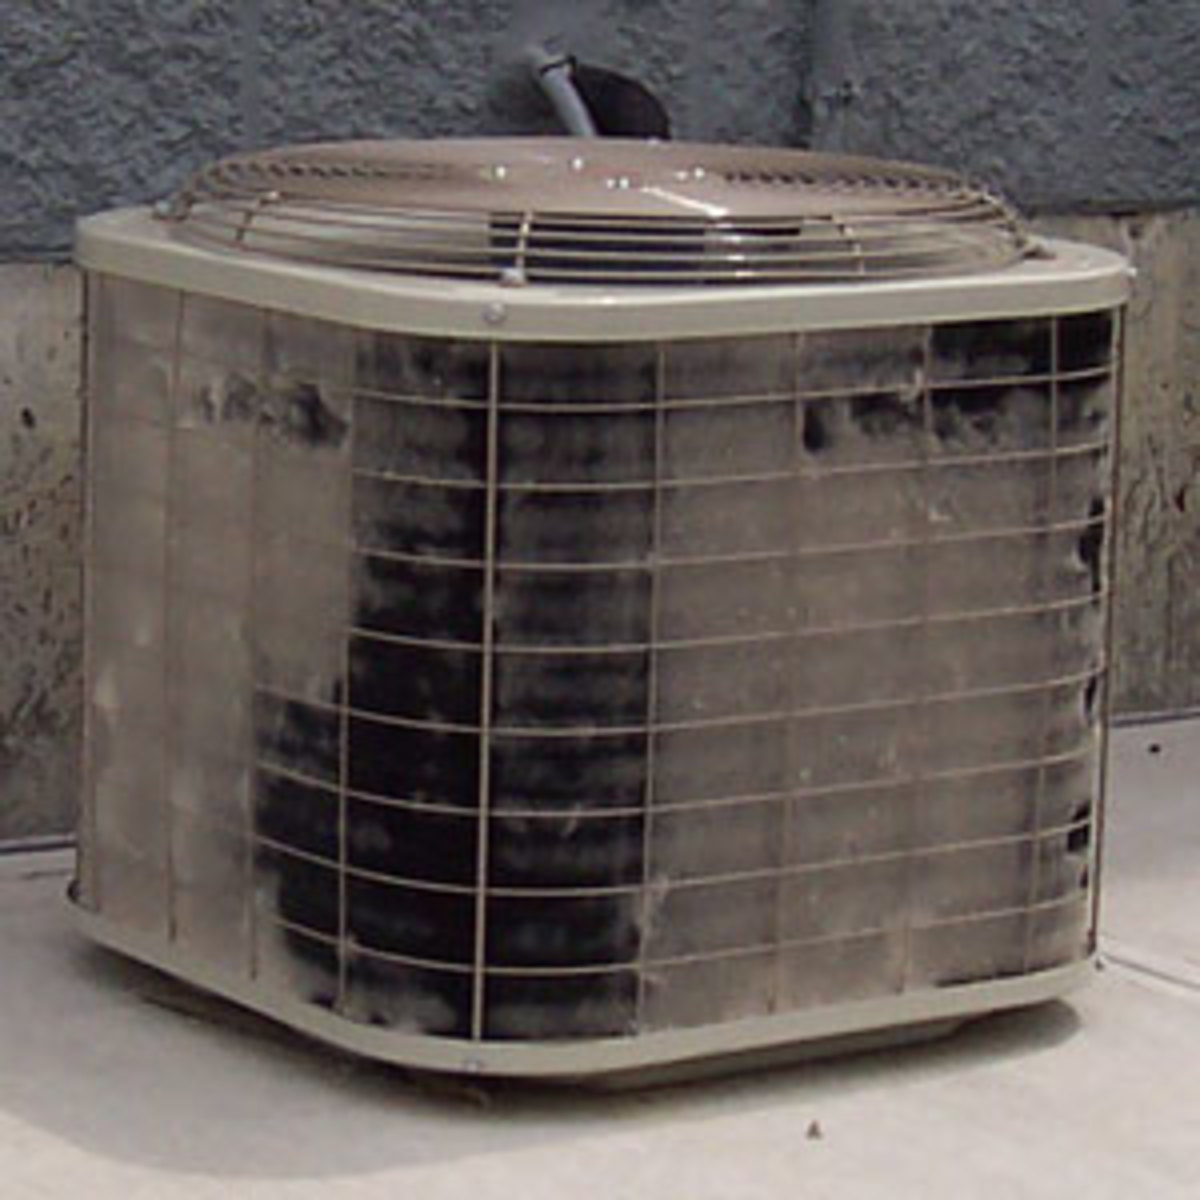 How To Spray Down And Clean A Central Air Conditioner